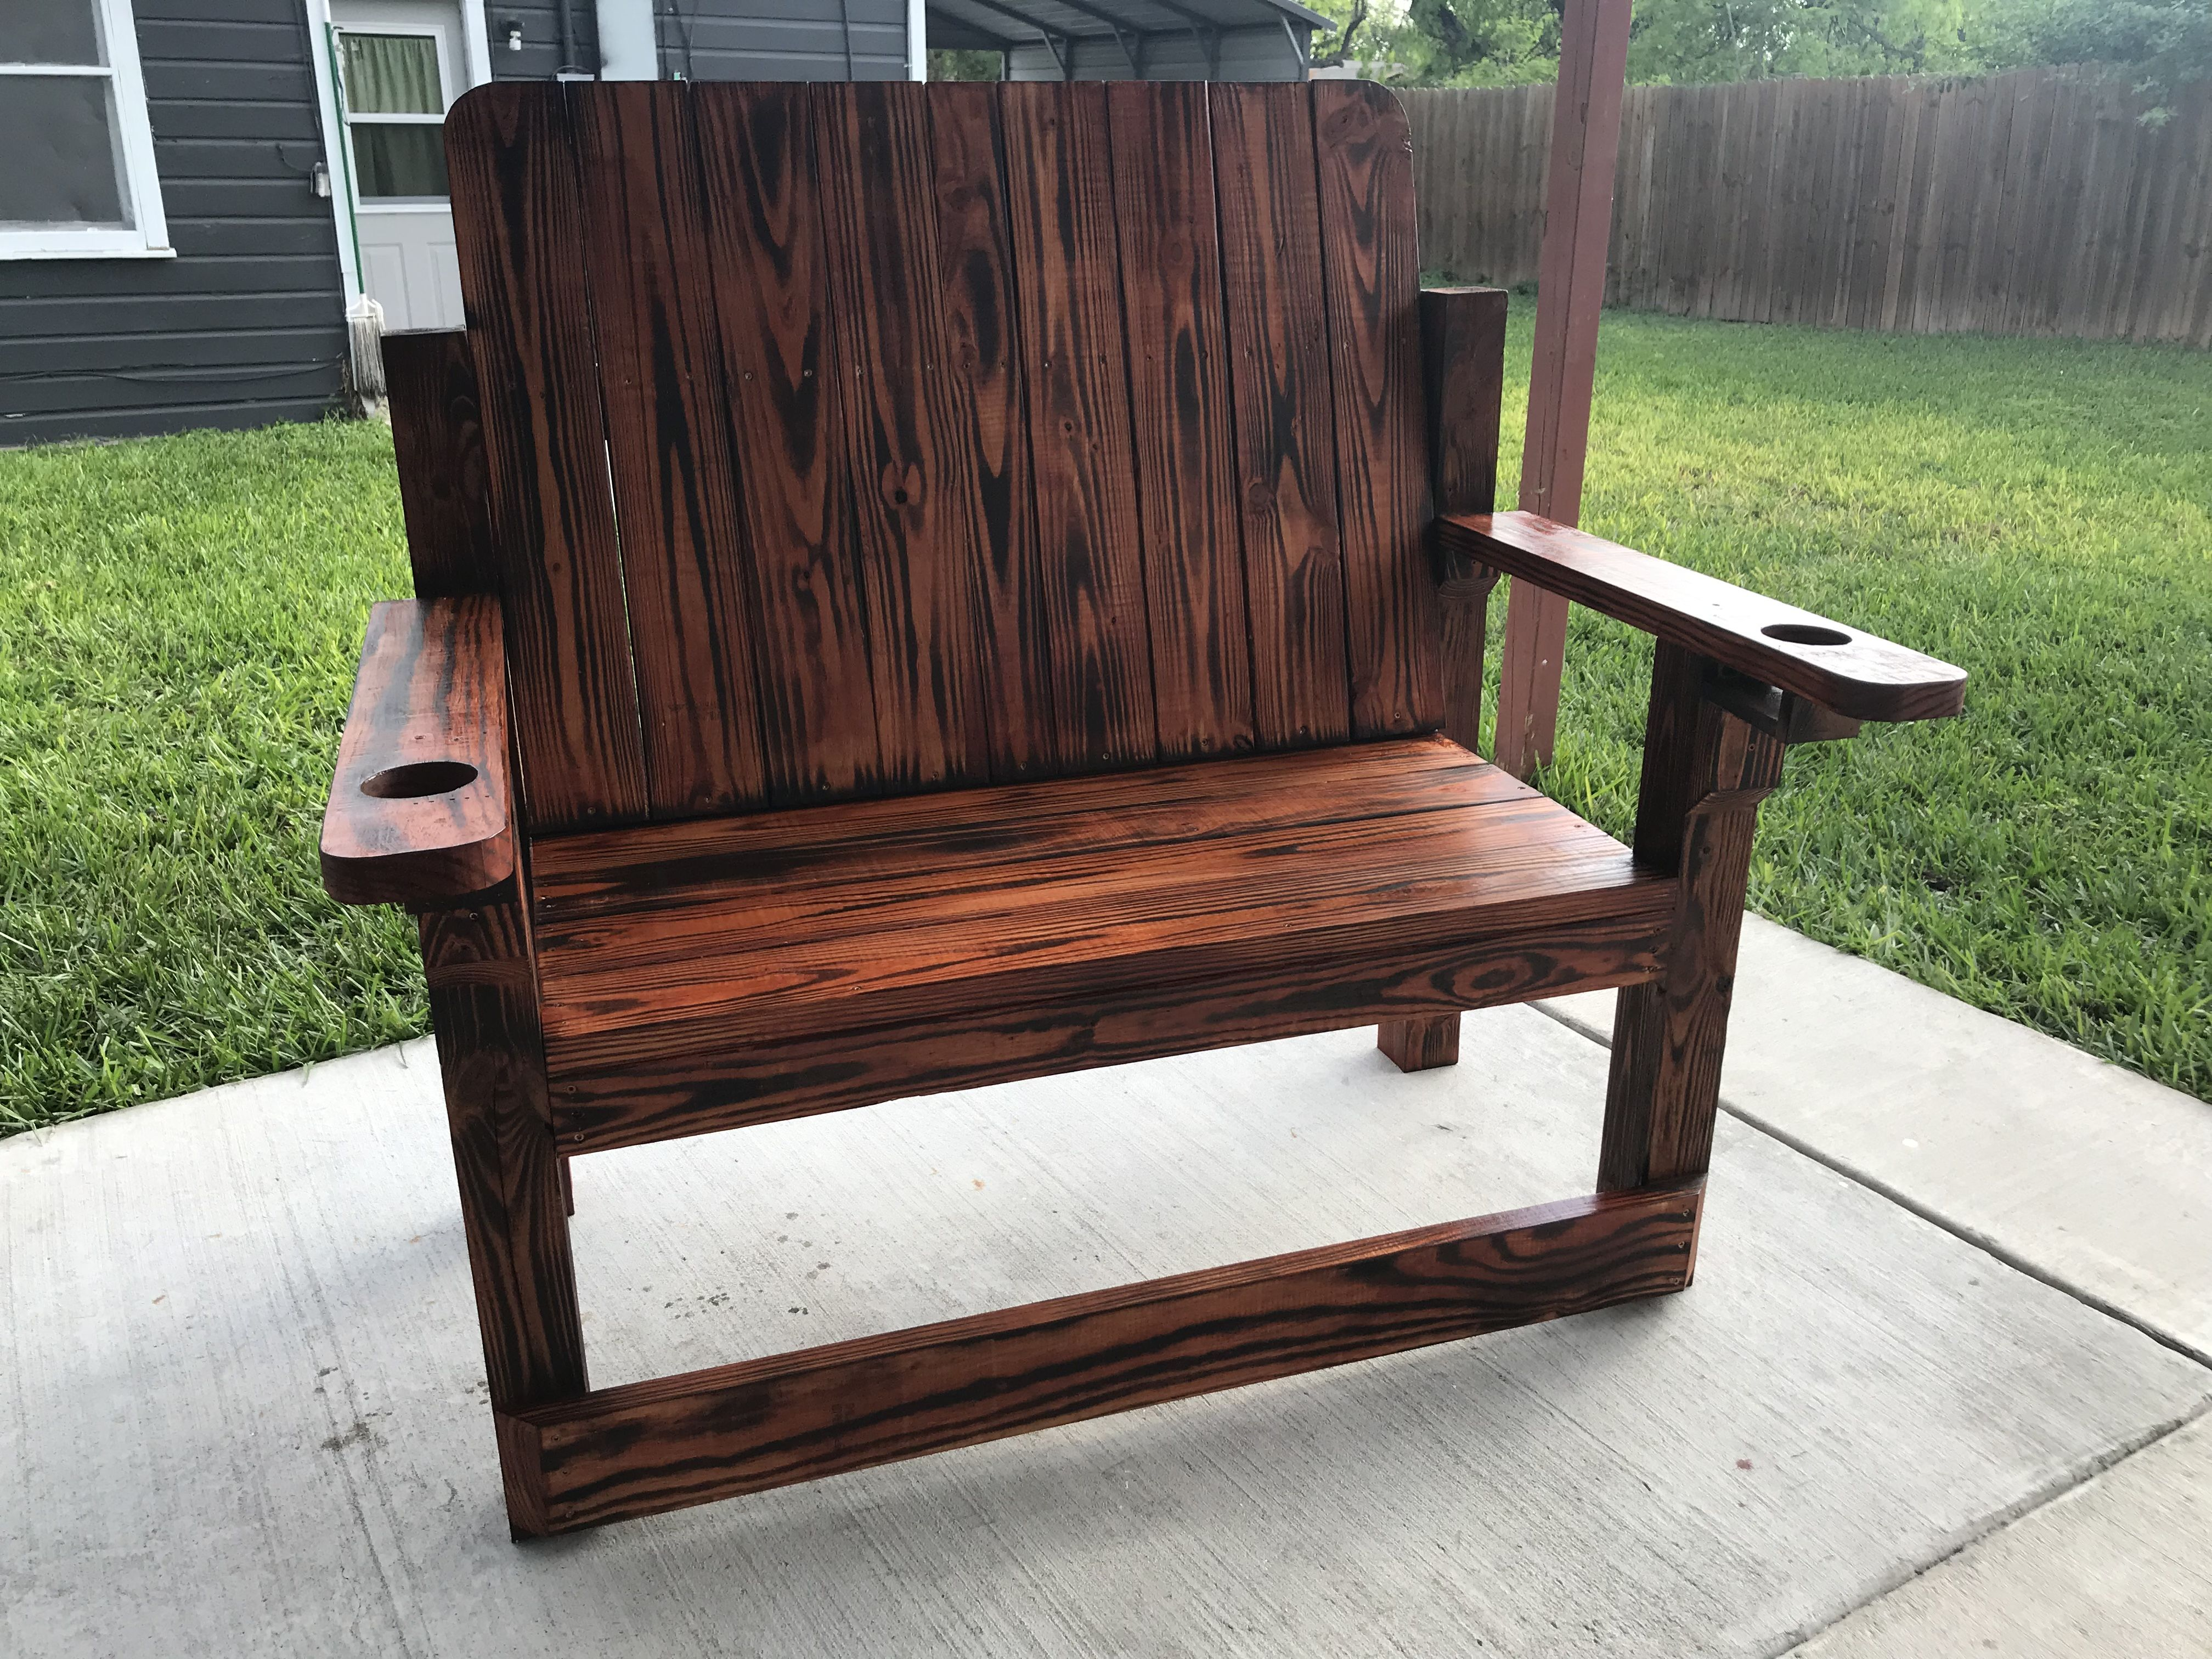 Outdoor Oversized Wooden Bench Wooden Bench Wooden Chair